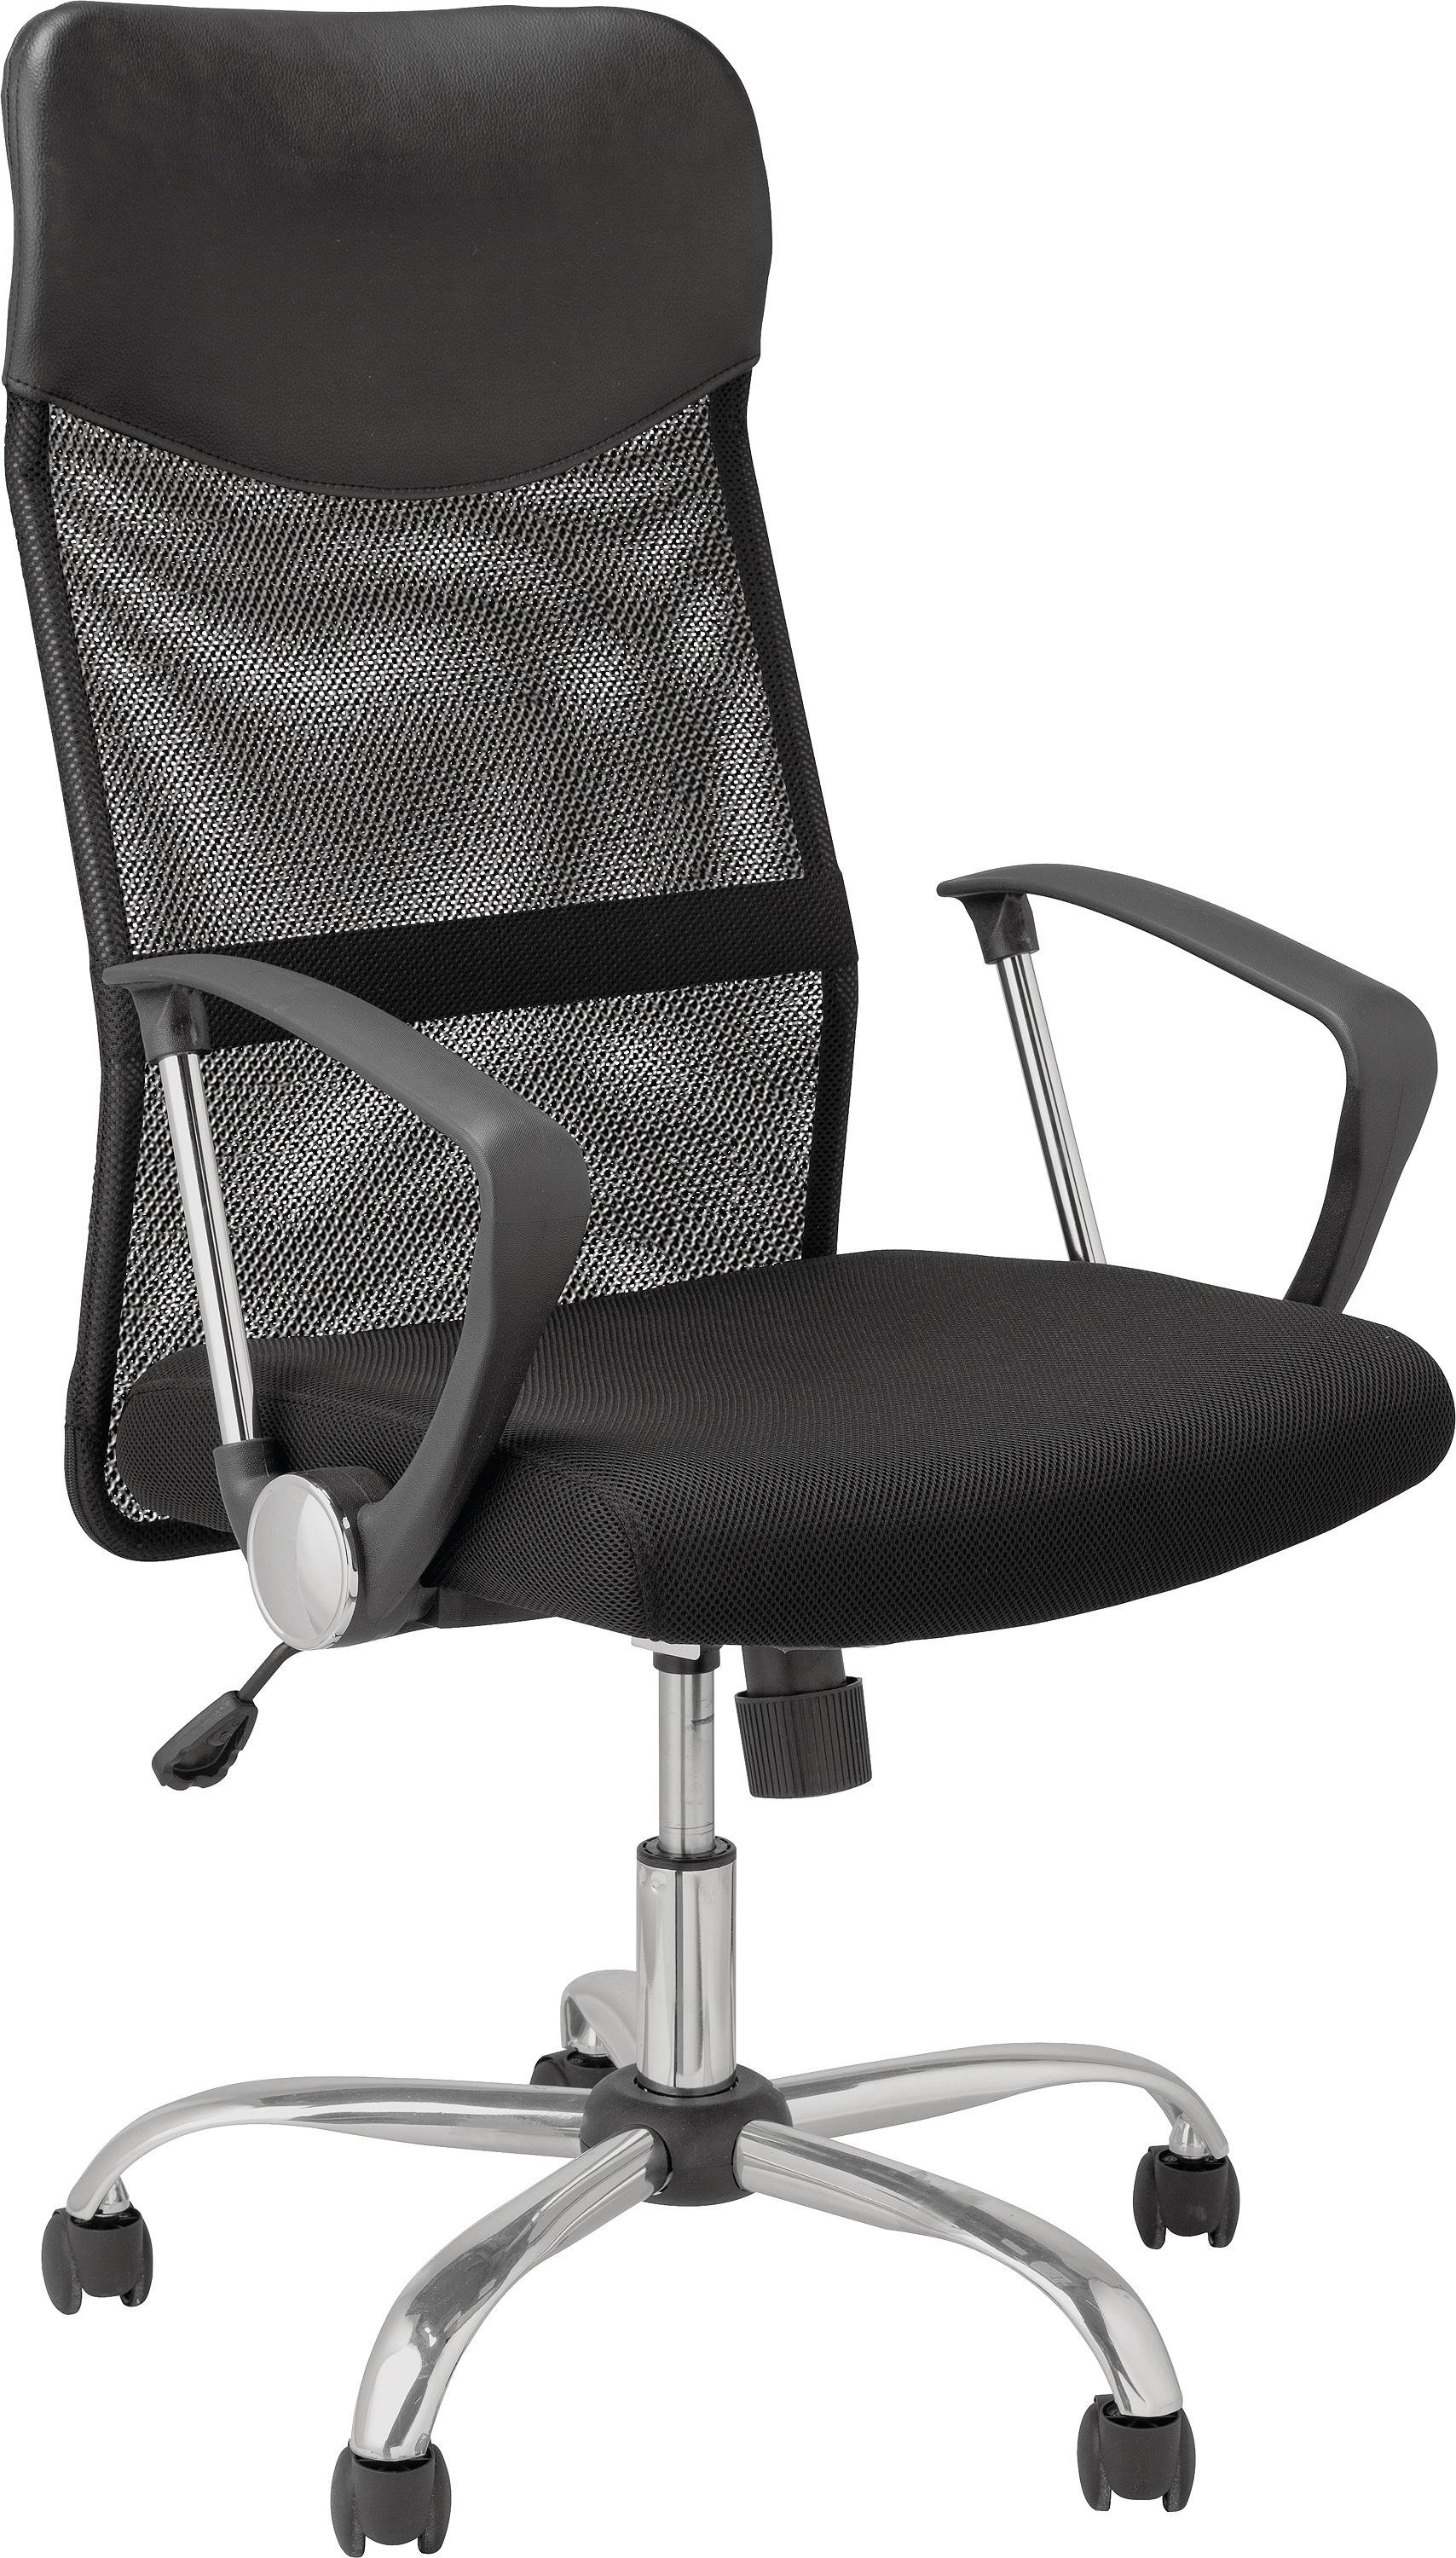 Buy HOME Mesh Leather Effect Adjustable Office Chair Black at